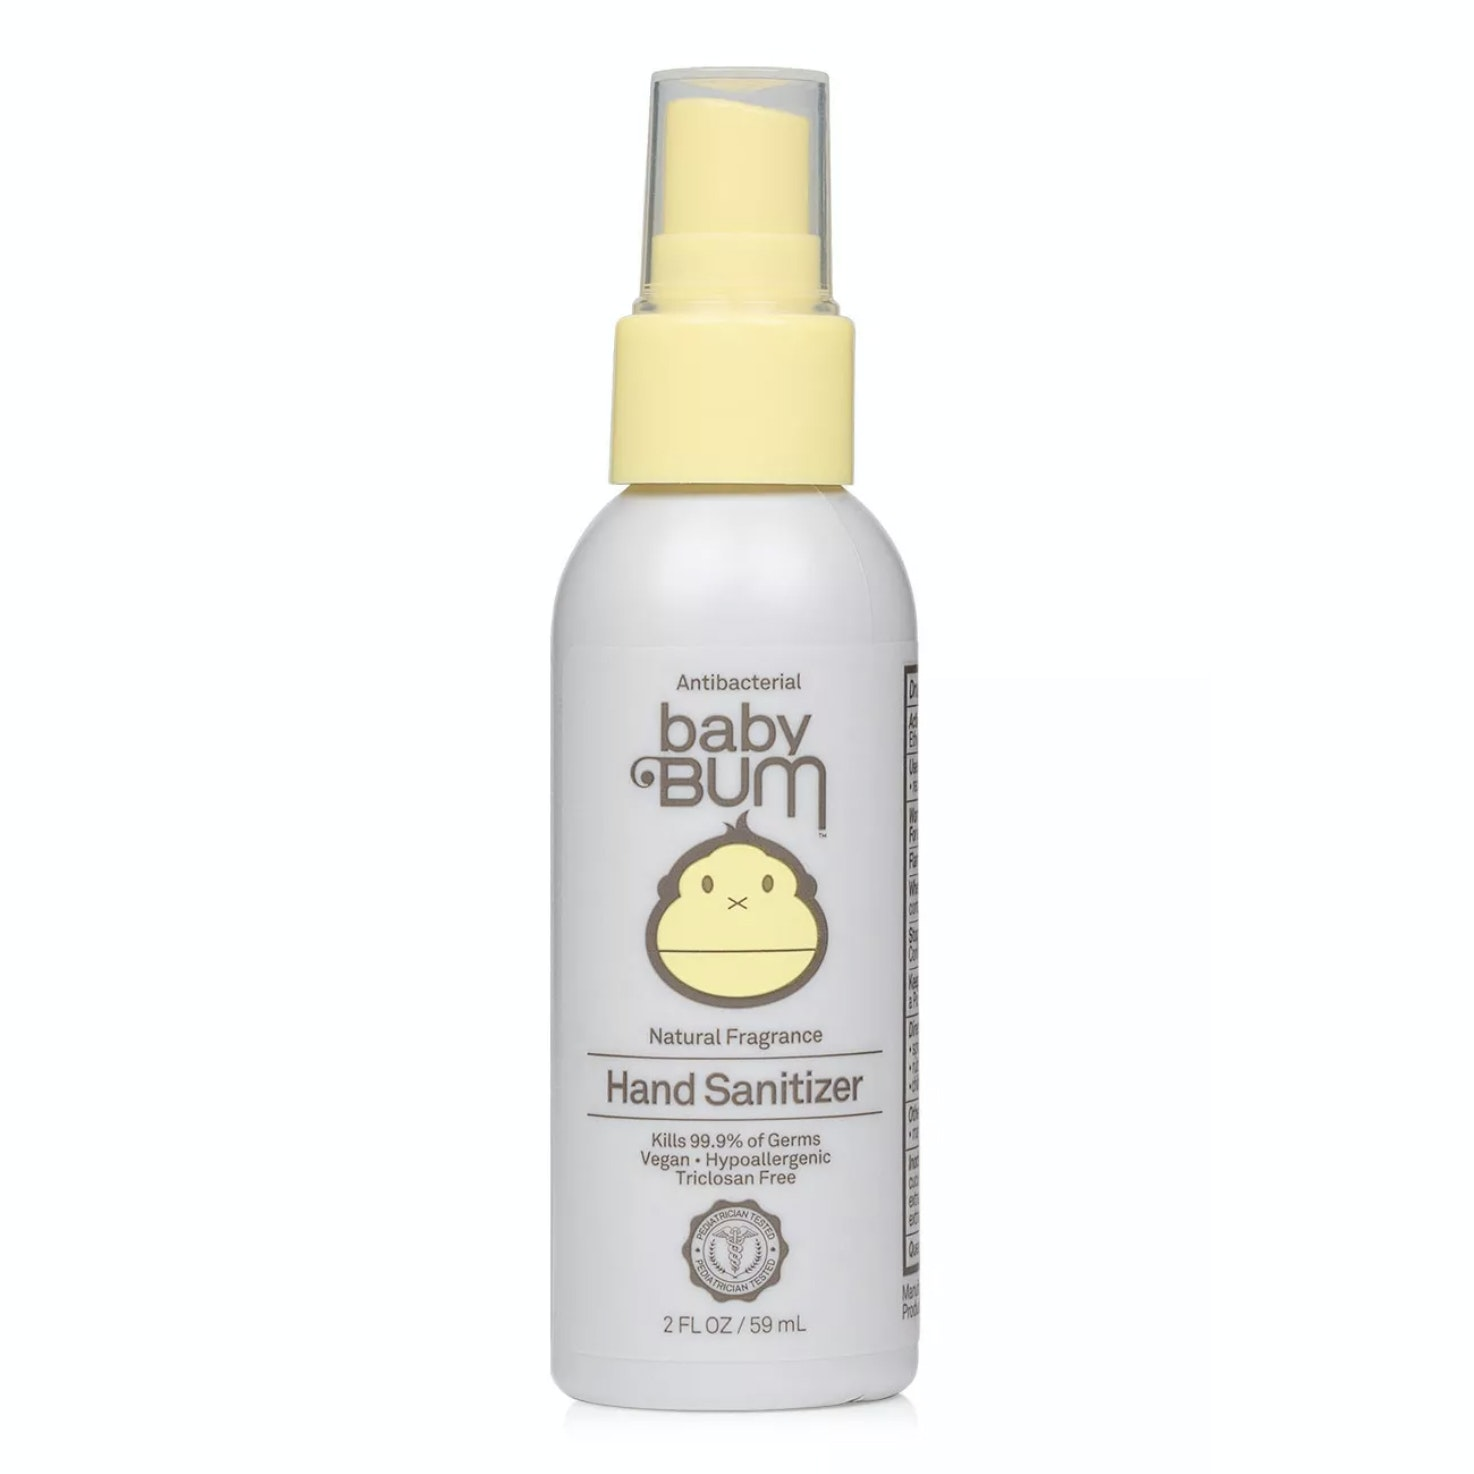 BabyBum® Hand Sanitizer